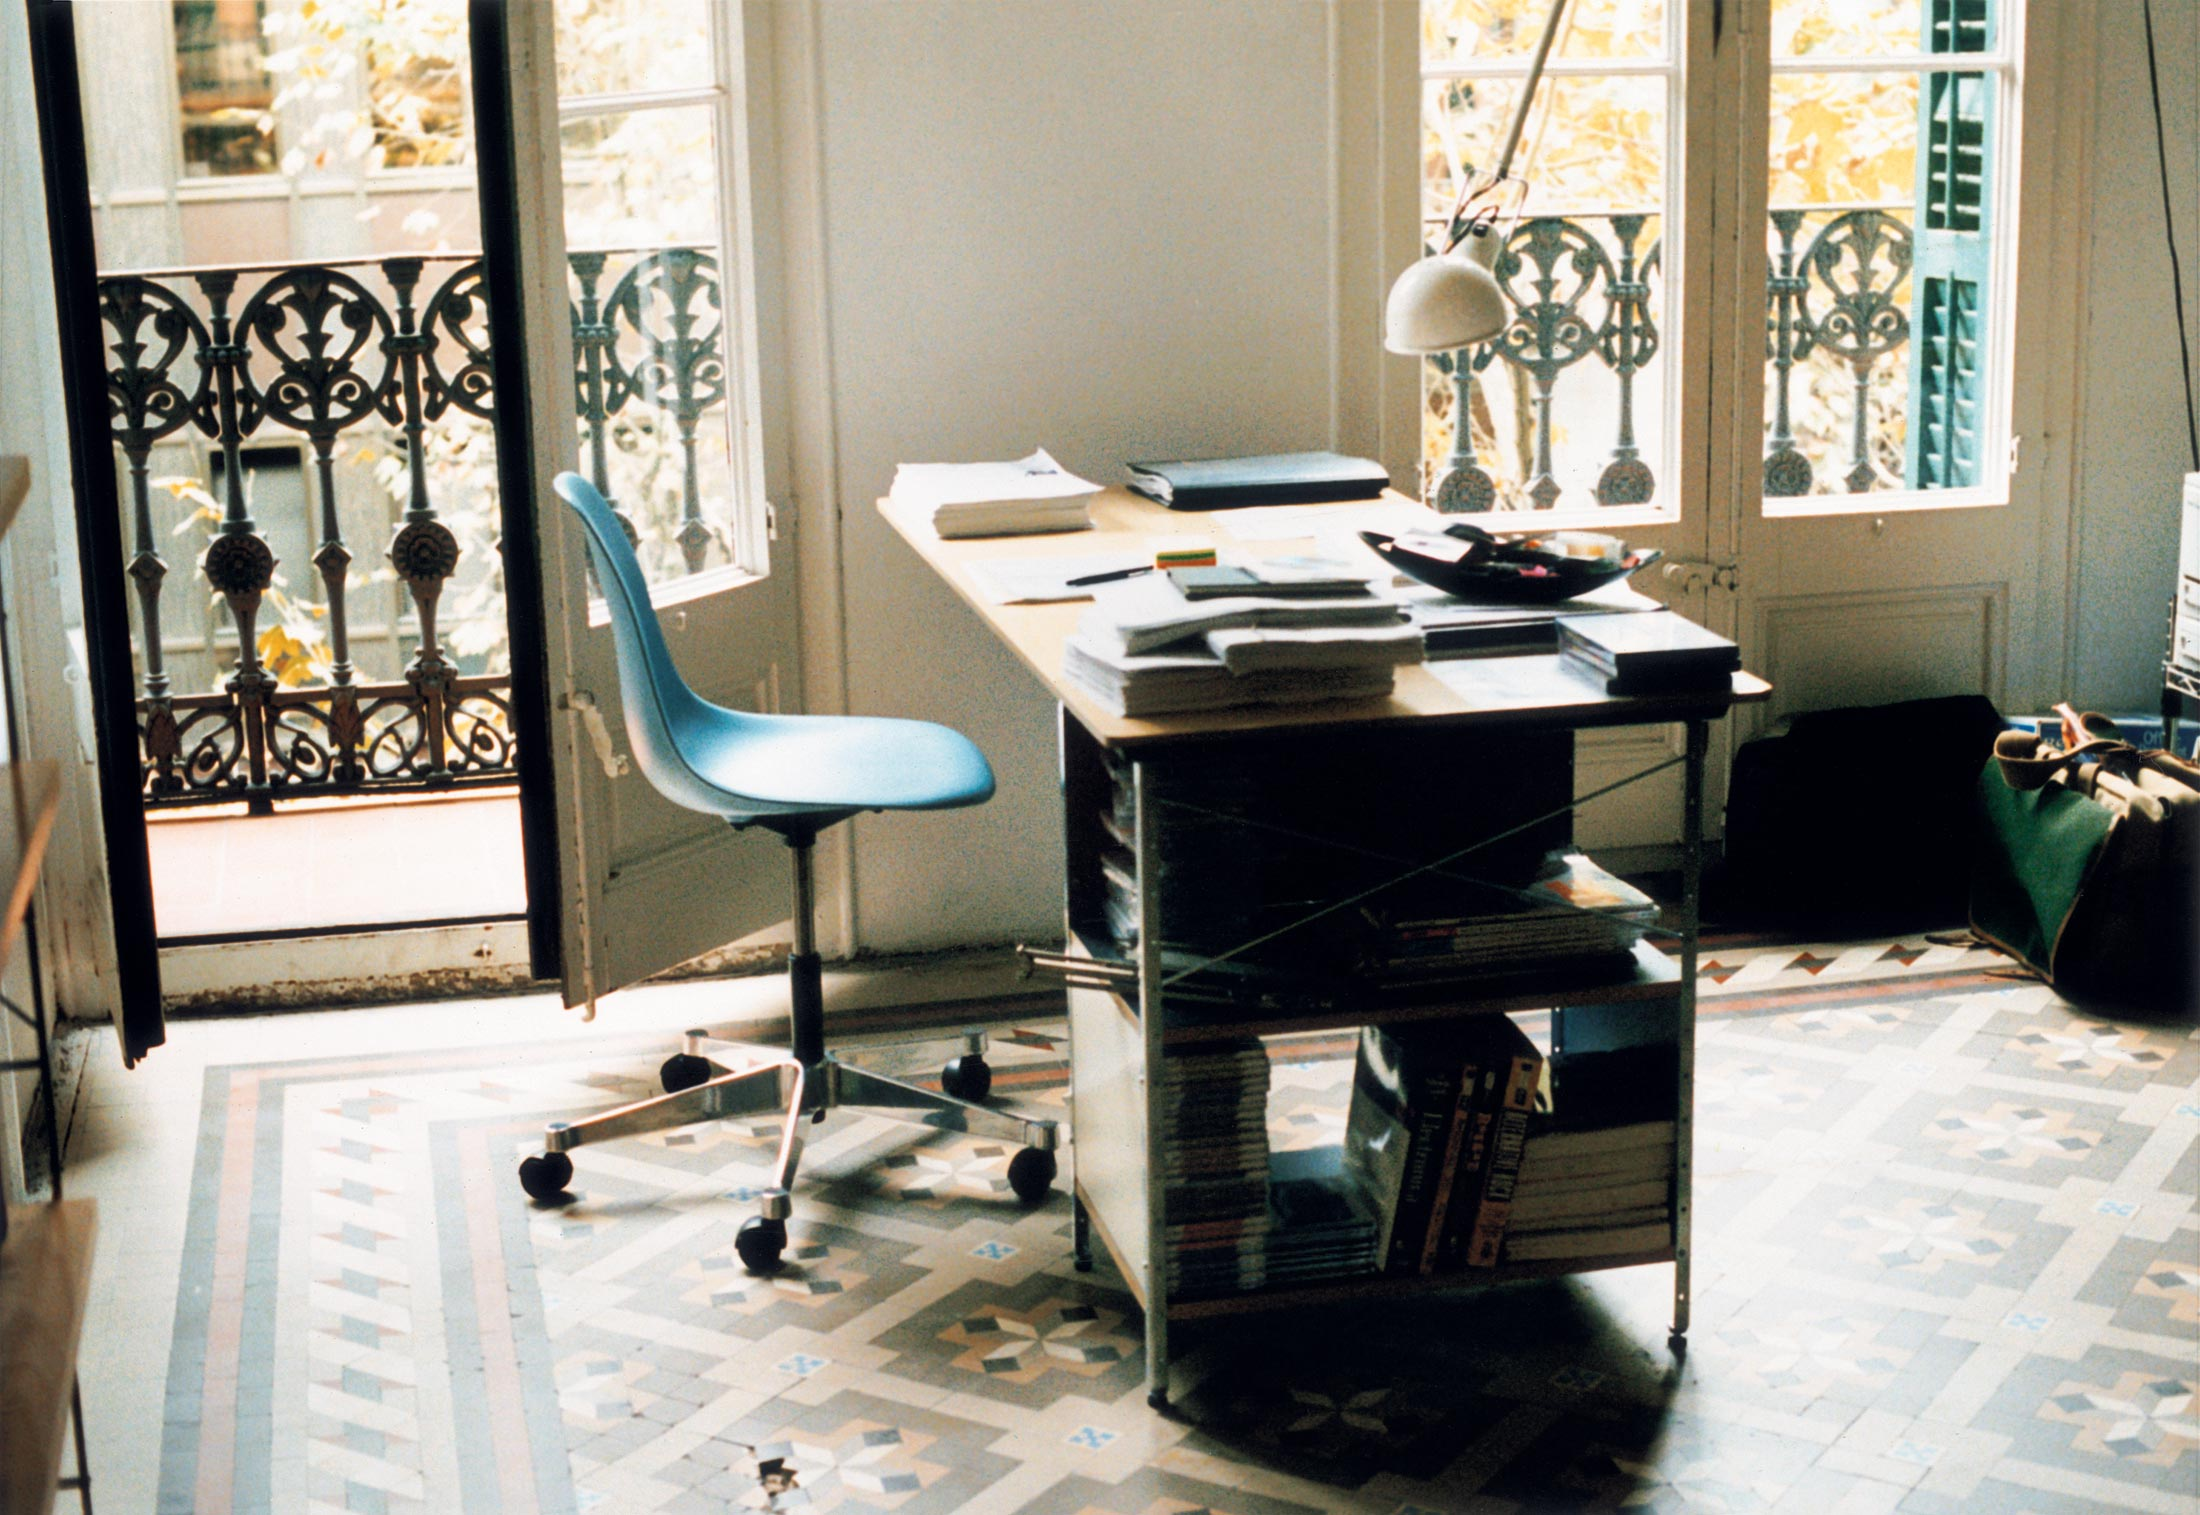 furniture henry miller ingenuity new office unbeatable chair eames chairs aeron desk most herman